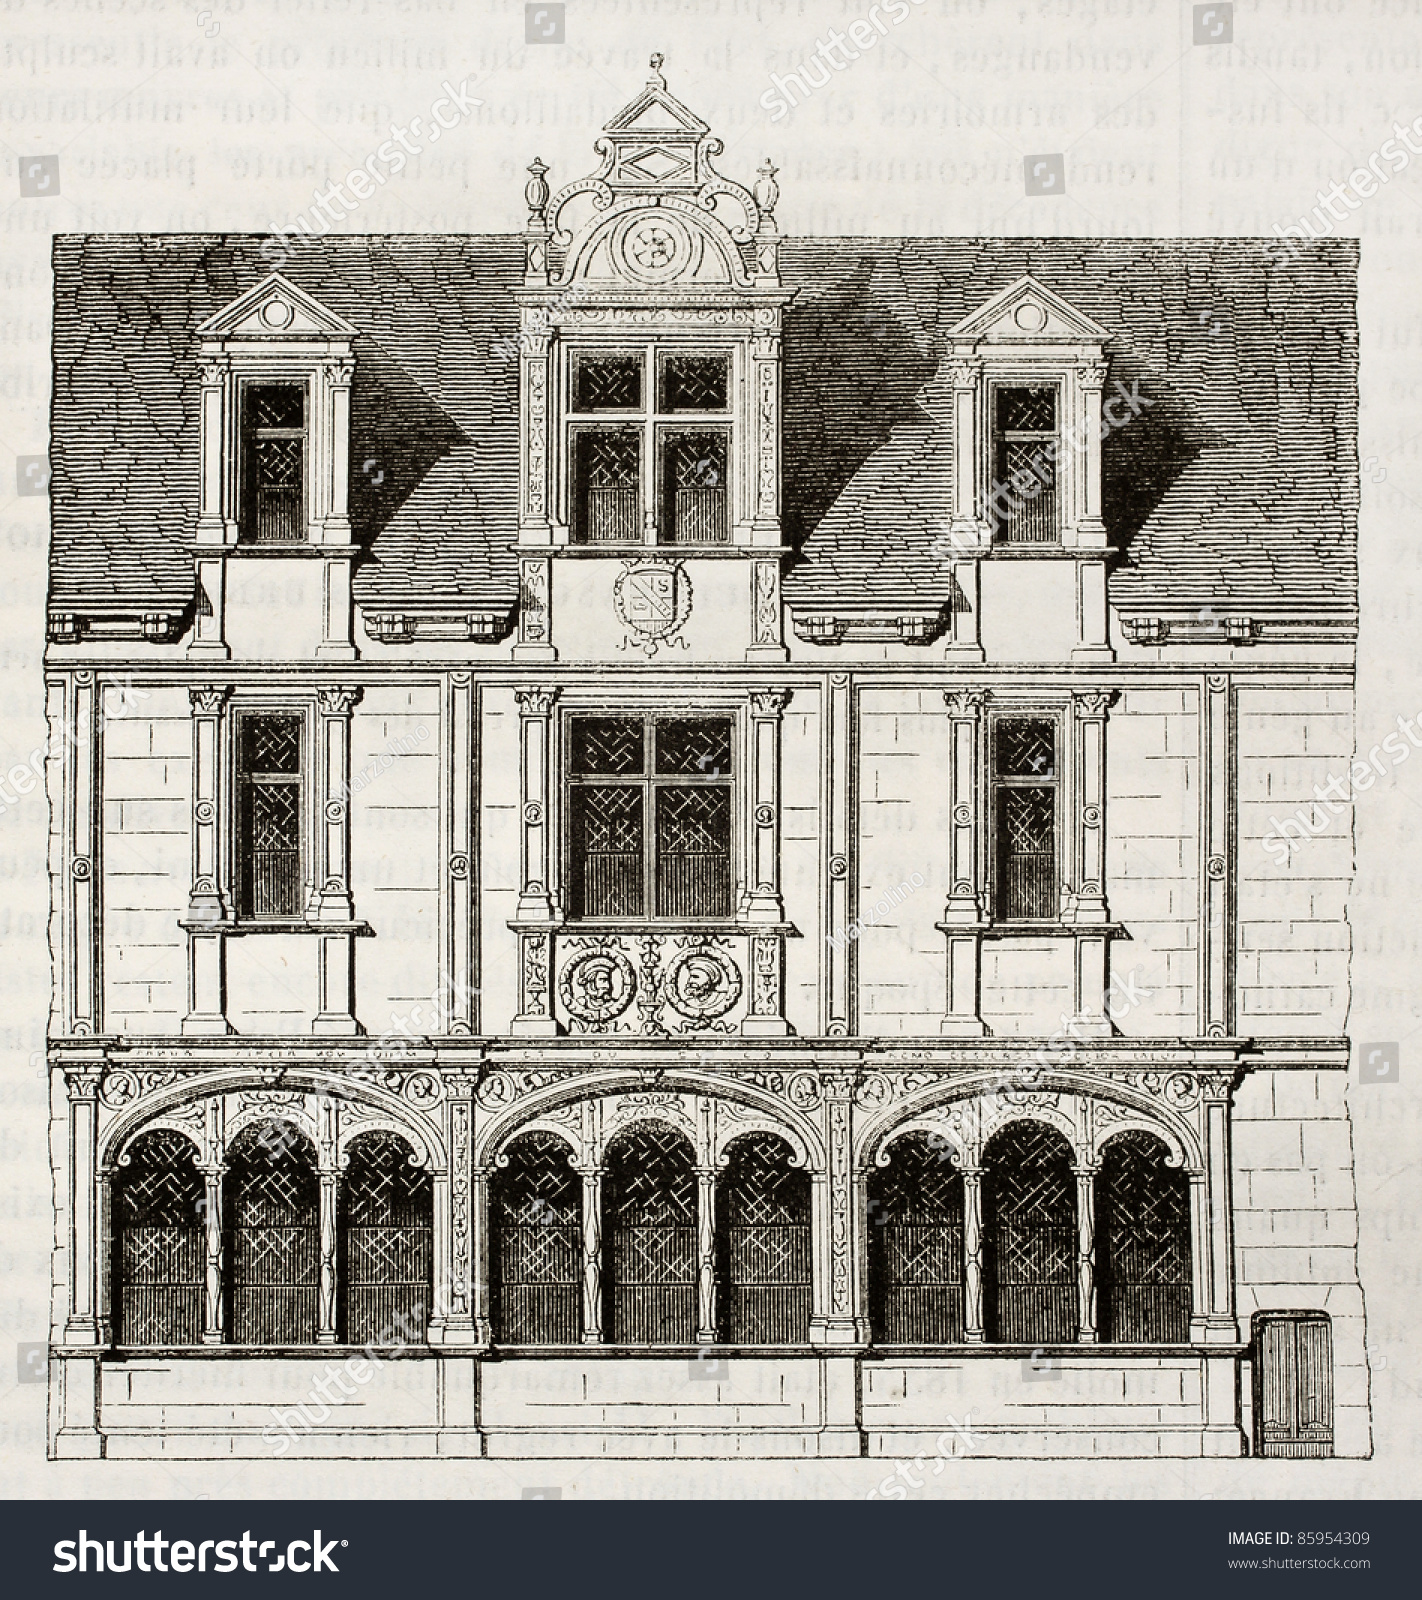 house in rue saint paul paris demolished in 1835 by unidentified author published on. Black Bedroom Furniture Sets. Home Design Ideas